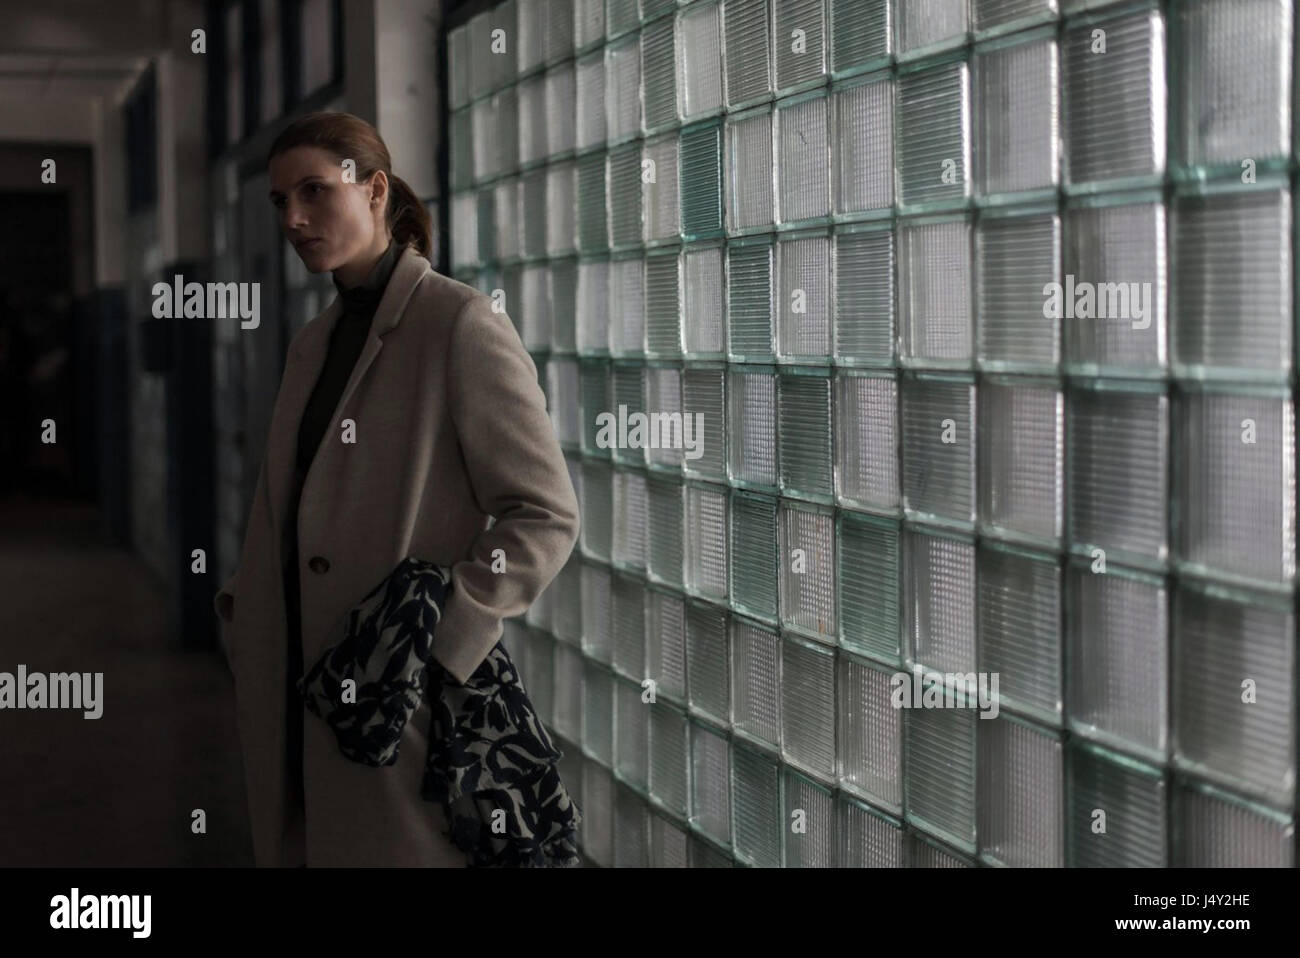 Loveless, is an upcoming Russian drama film directed by Andrey Zvyagintsev. It has been selected to compete for - Stock Image